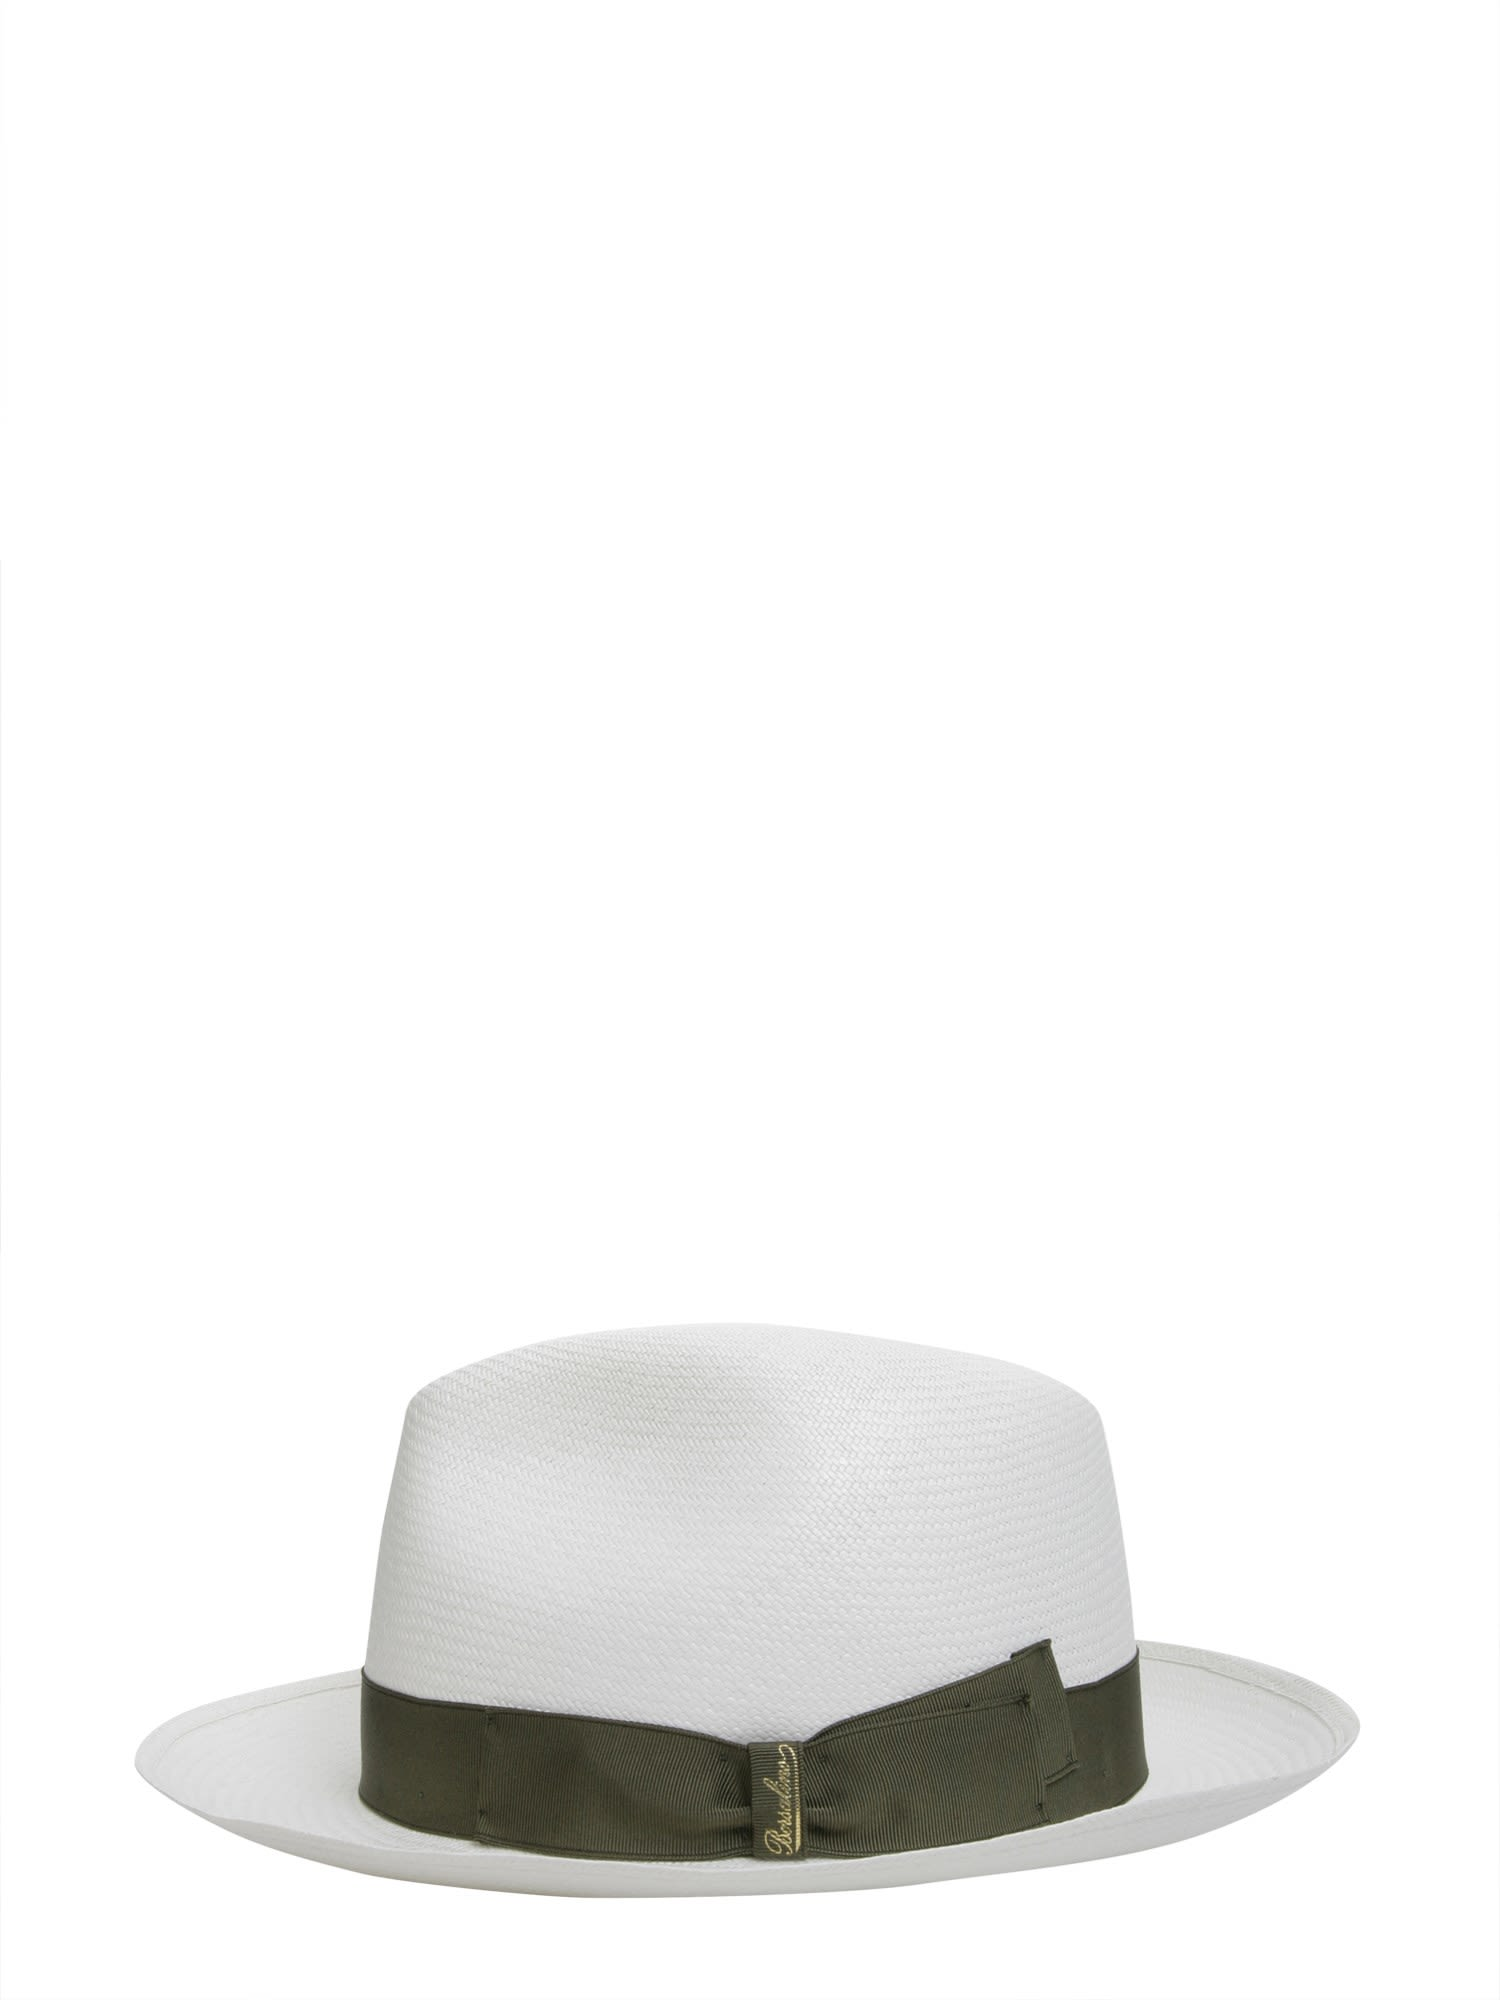 Borsalino Medium Brim Panama Hat